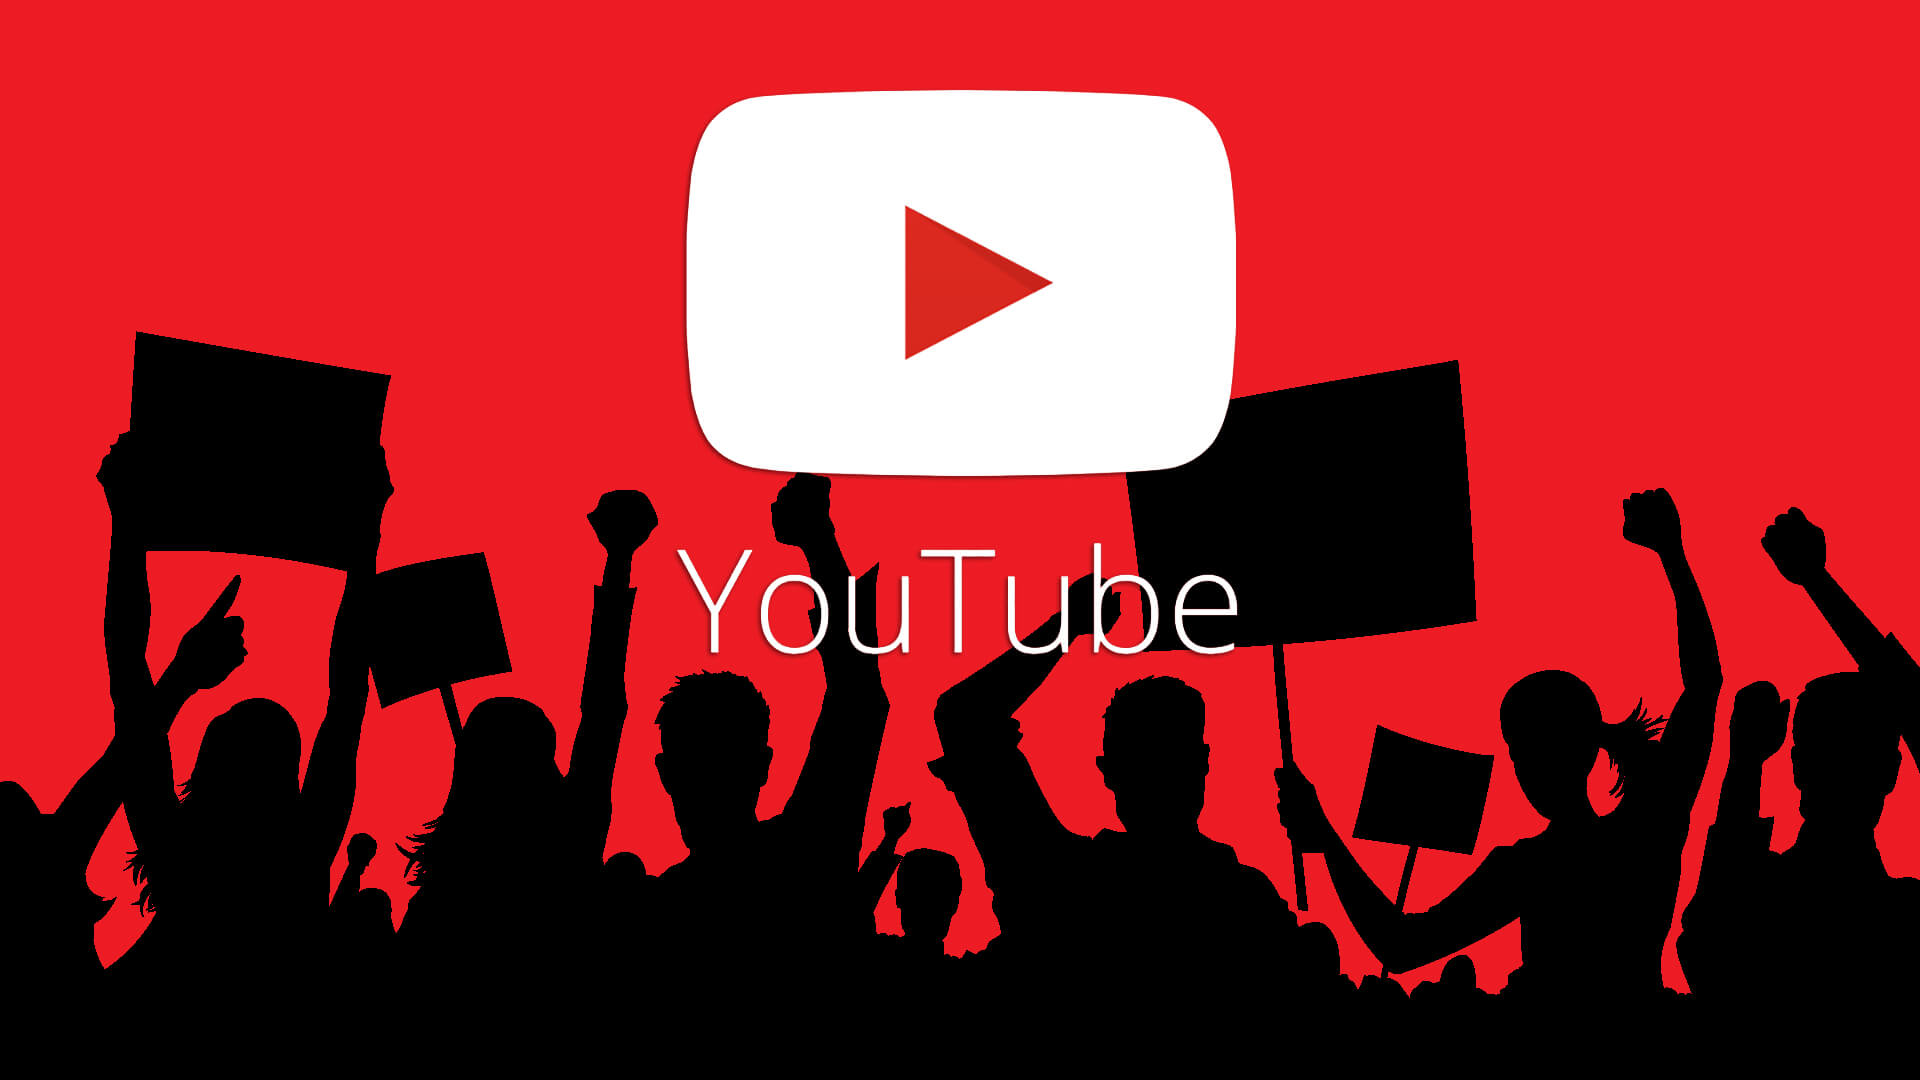 Youtube server down the problem is solved youtube website is working fine